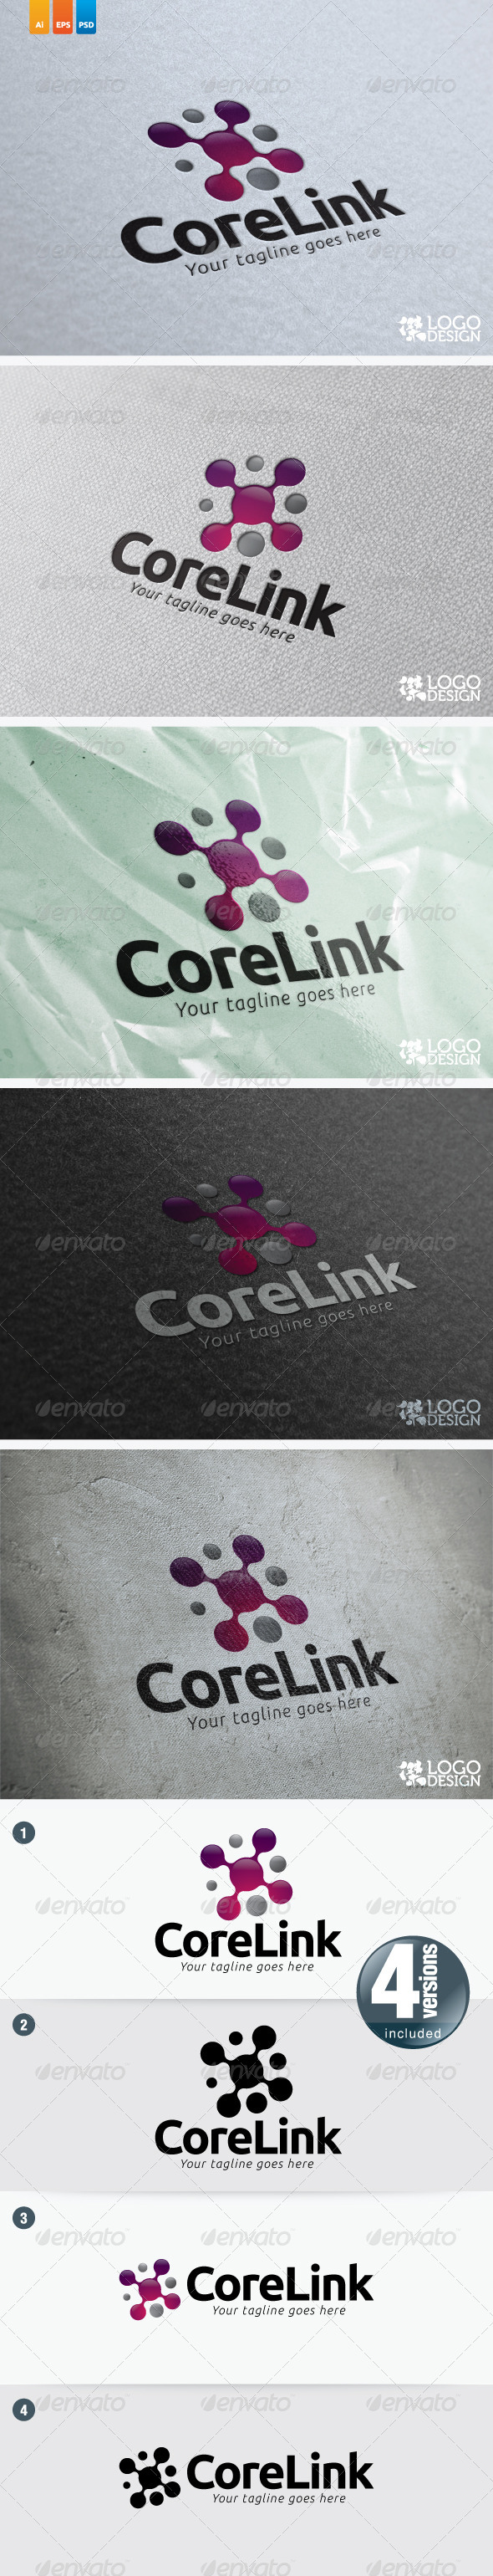 Core Link - 3d Abstract